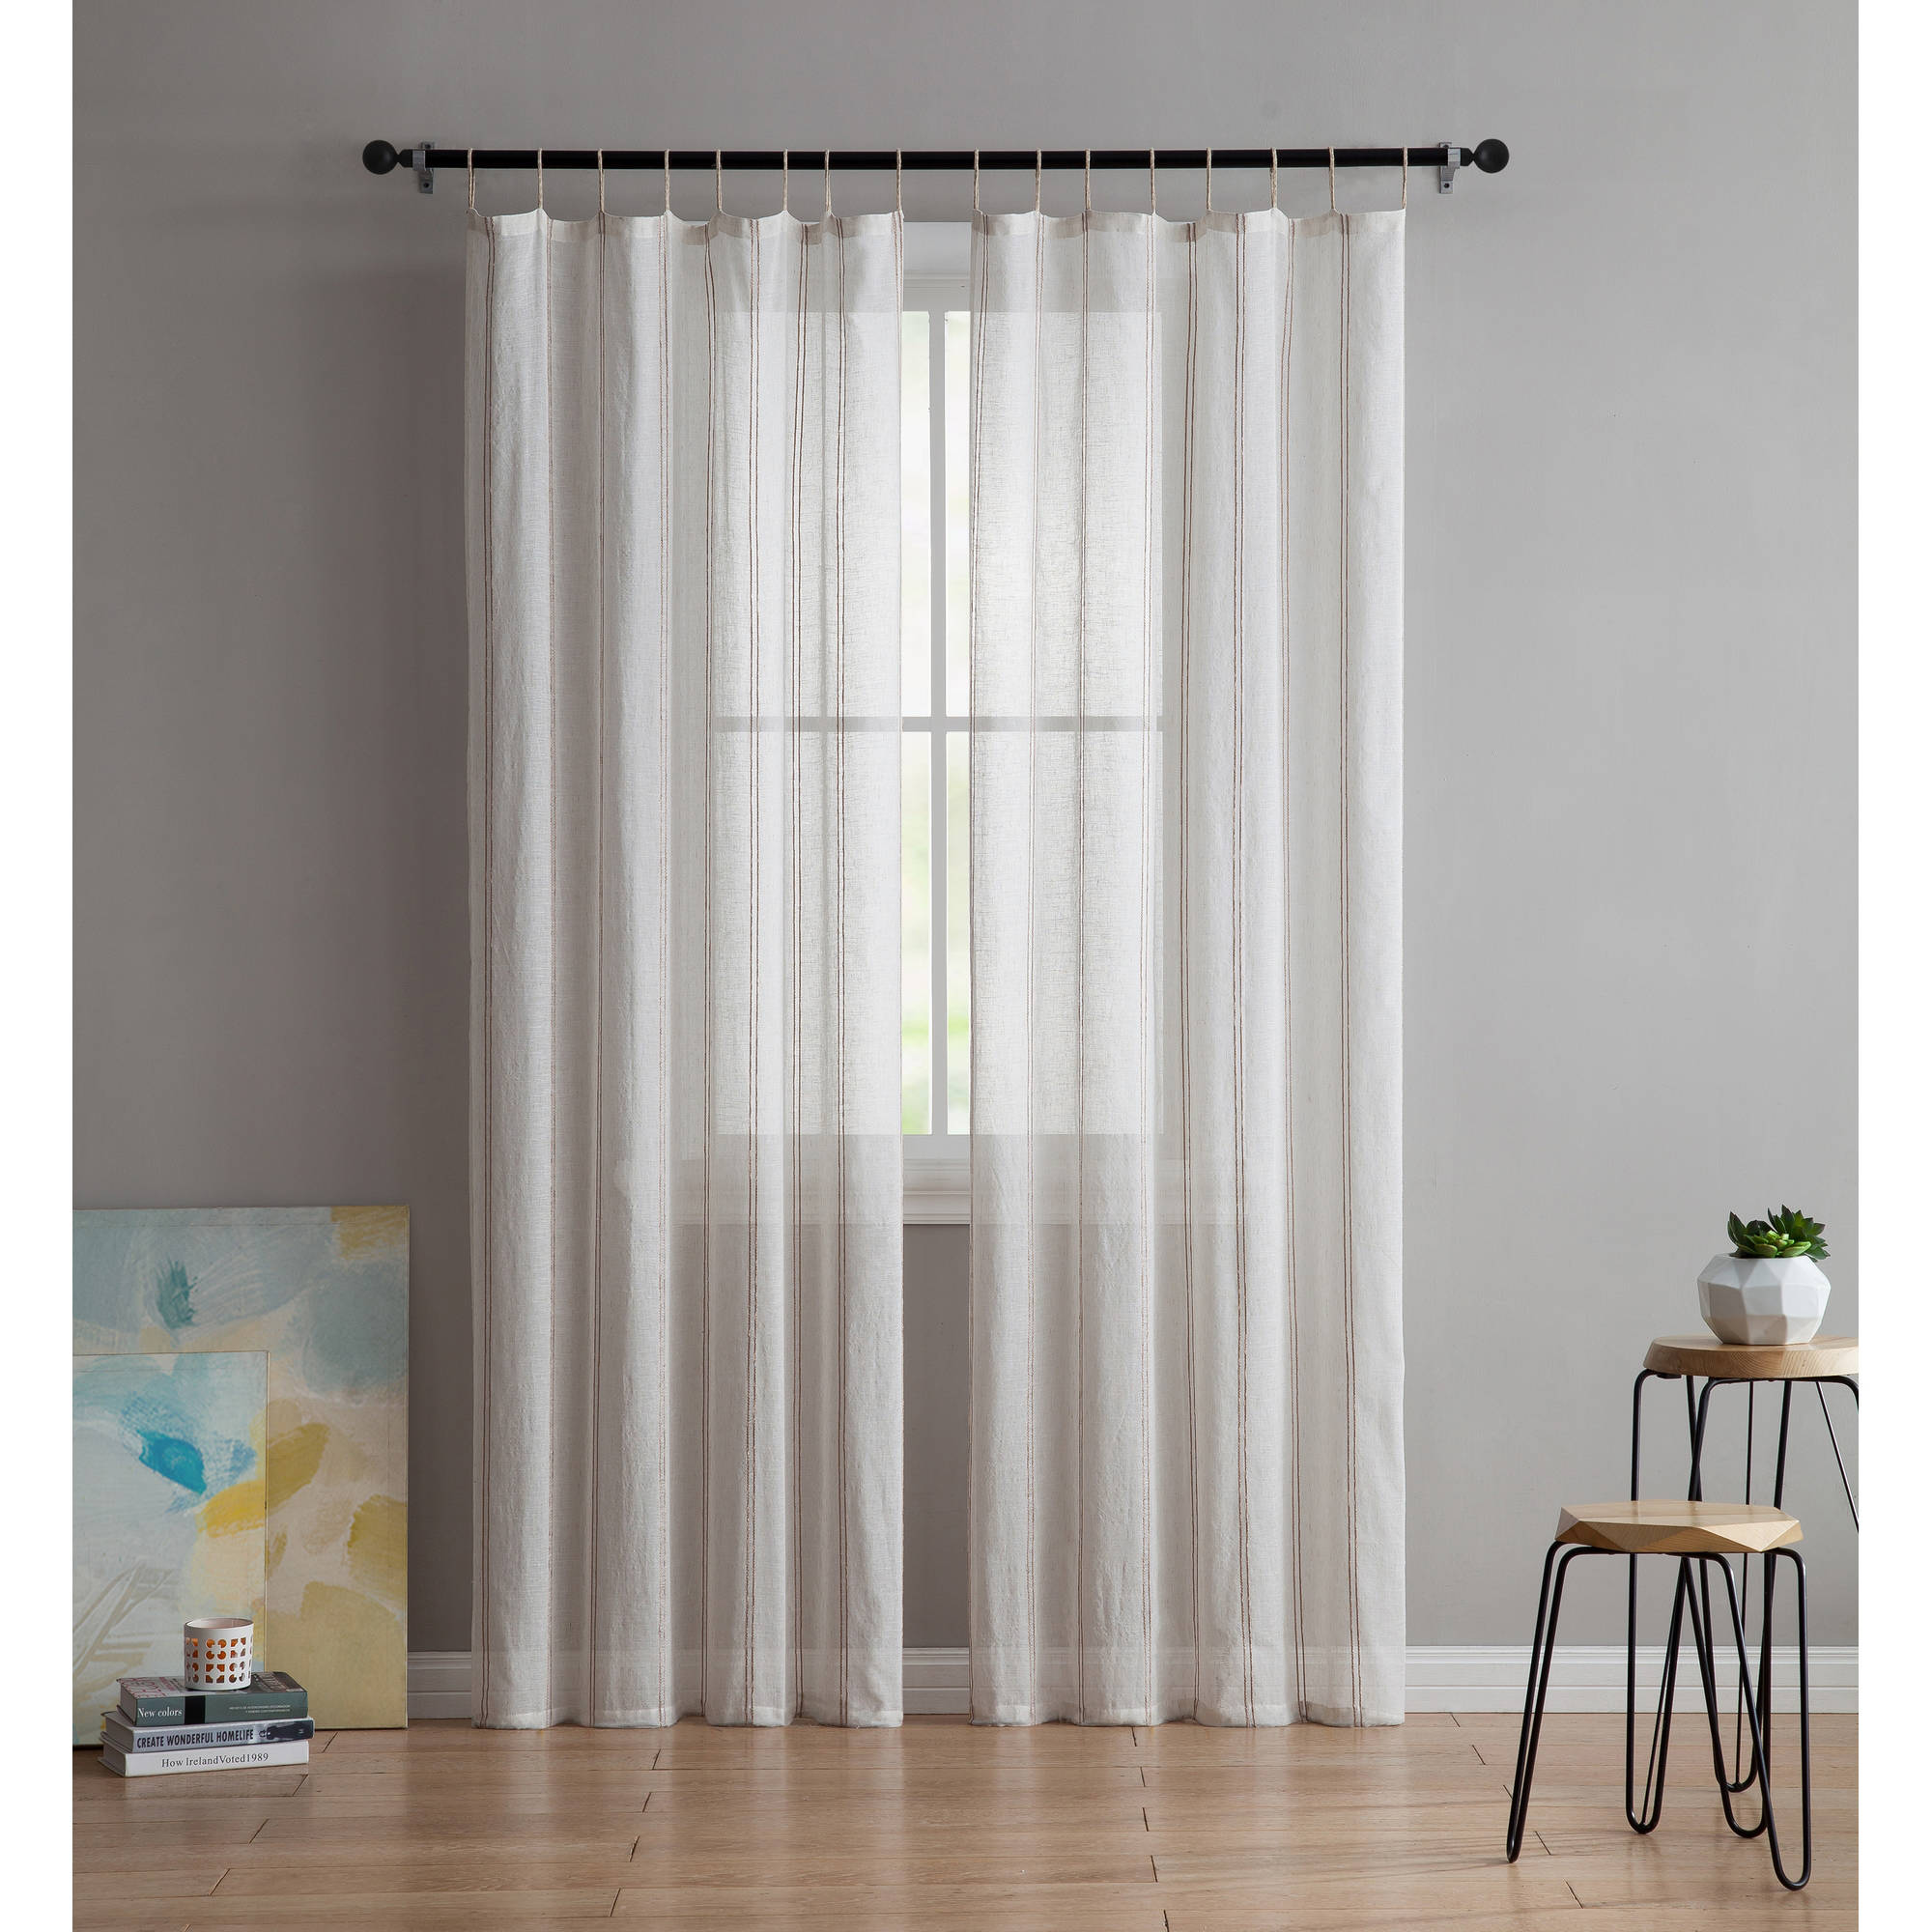 VCNY Home 2-Tone Shaina Sheer Burlap Rope Window Curtain Panel, Set of 2, Multiple Sizes Available by Victoria Classics